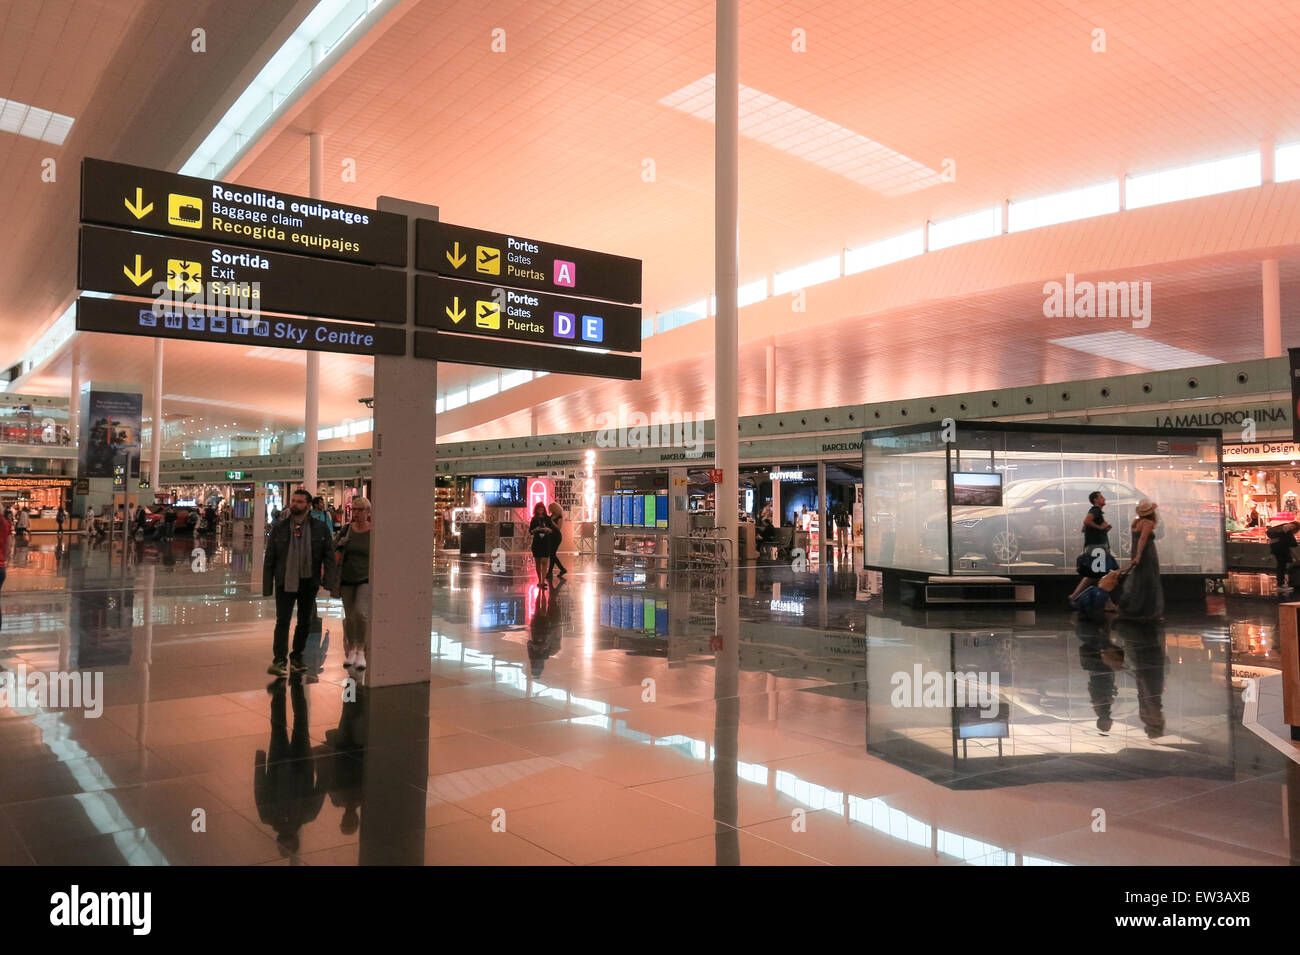 Interior of Prat Airport on May 5, 2015 in Barcelona, Spain. Since 2013, El Prat-Barcelona is the busiest airport - Stock Image